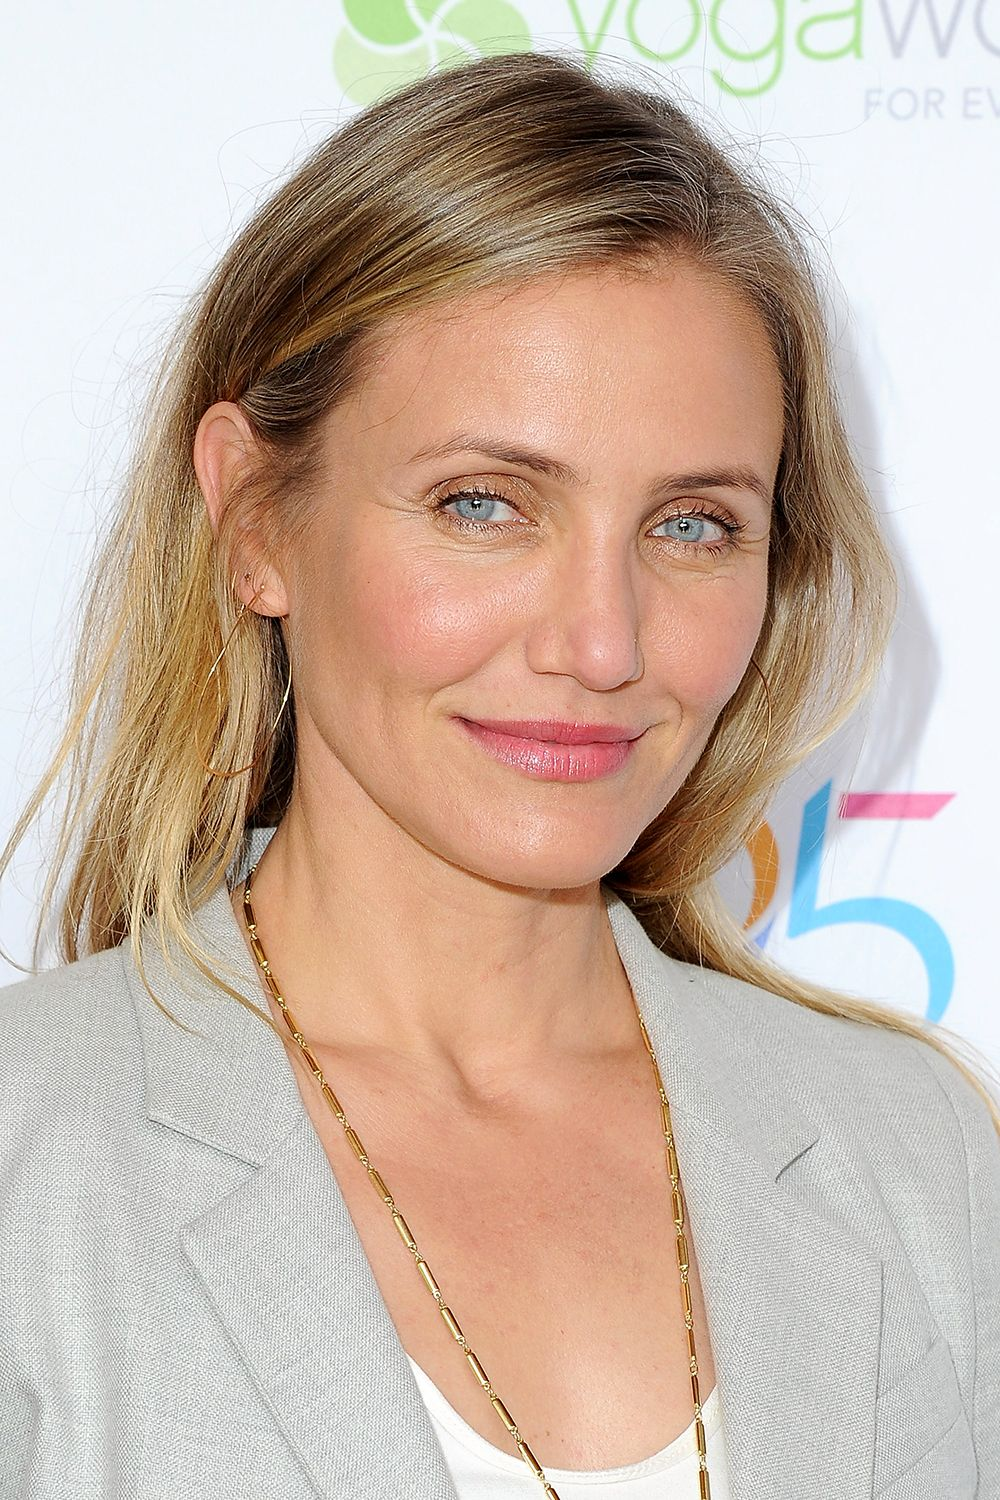 """Cameron Diaz While Diaz has """"no judgment on how people feel good,"""" she encourages others to understand the reasoning behind procedures like botox. """"They're to help people feel a little bit better about themselves,"""" Diaz says in her tome, The Longevity Book ."""